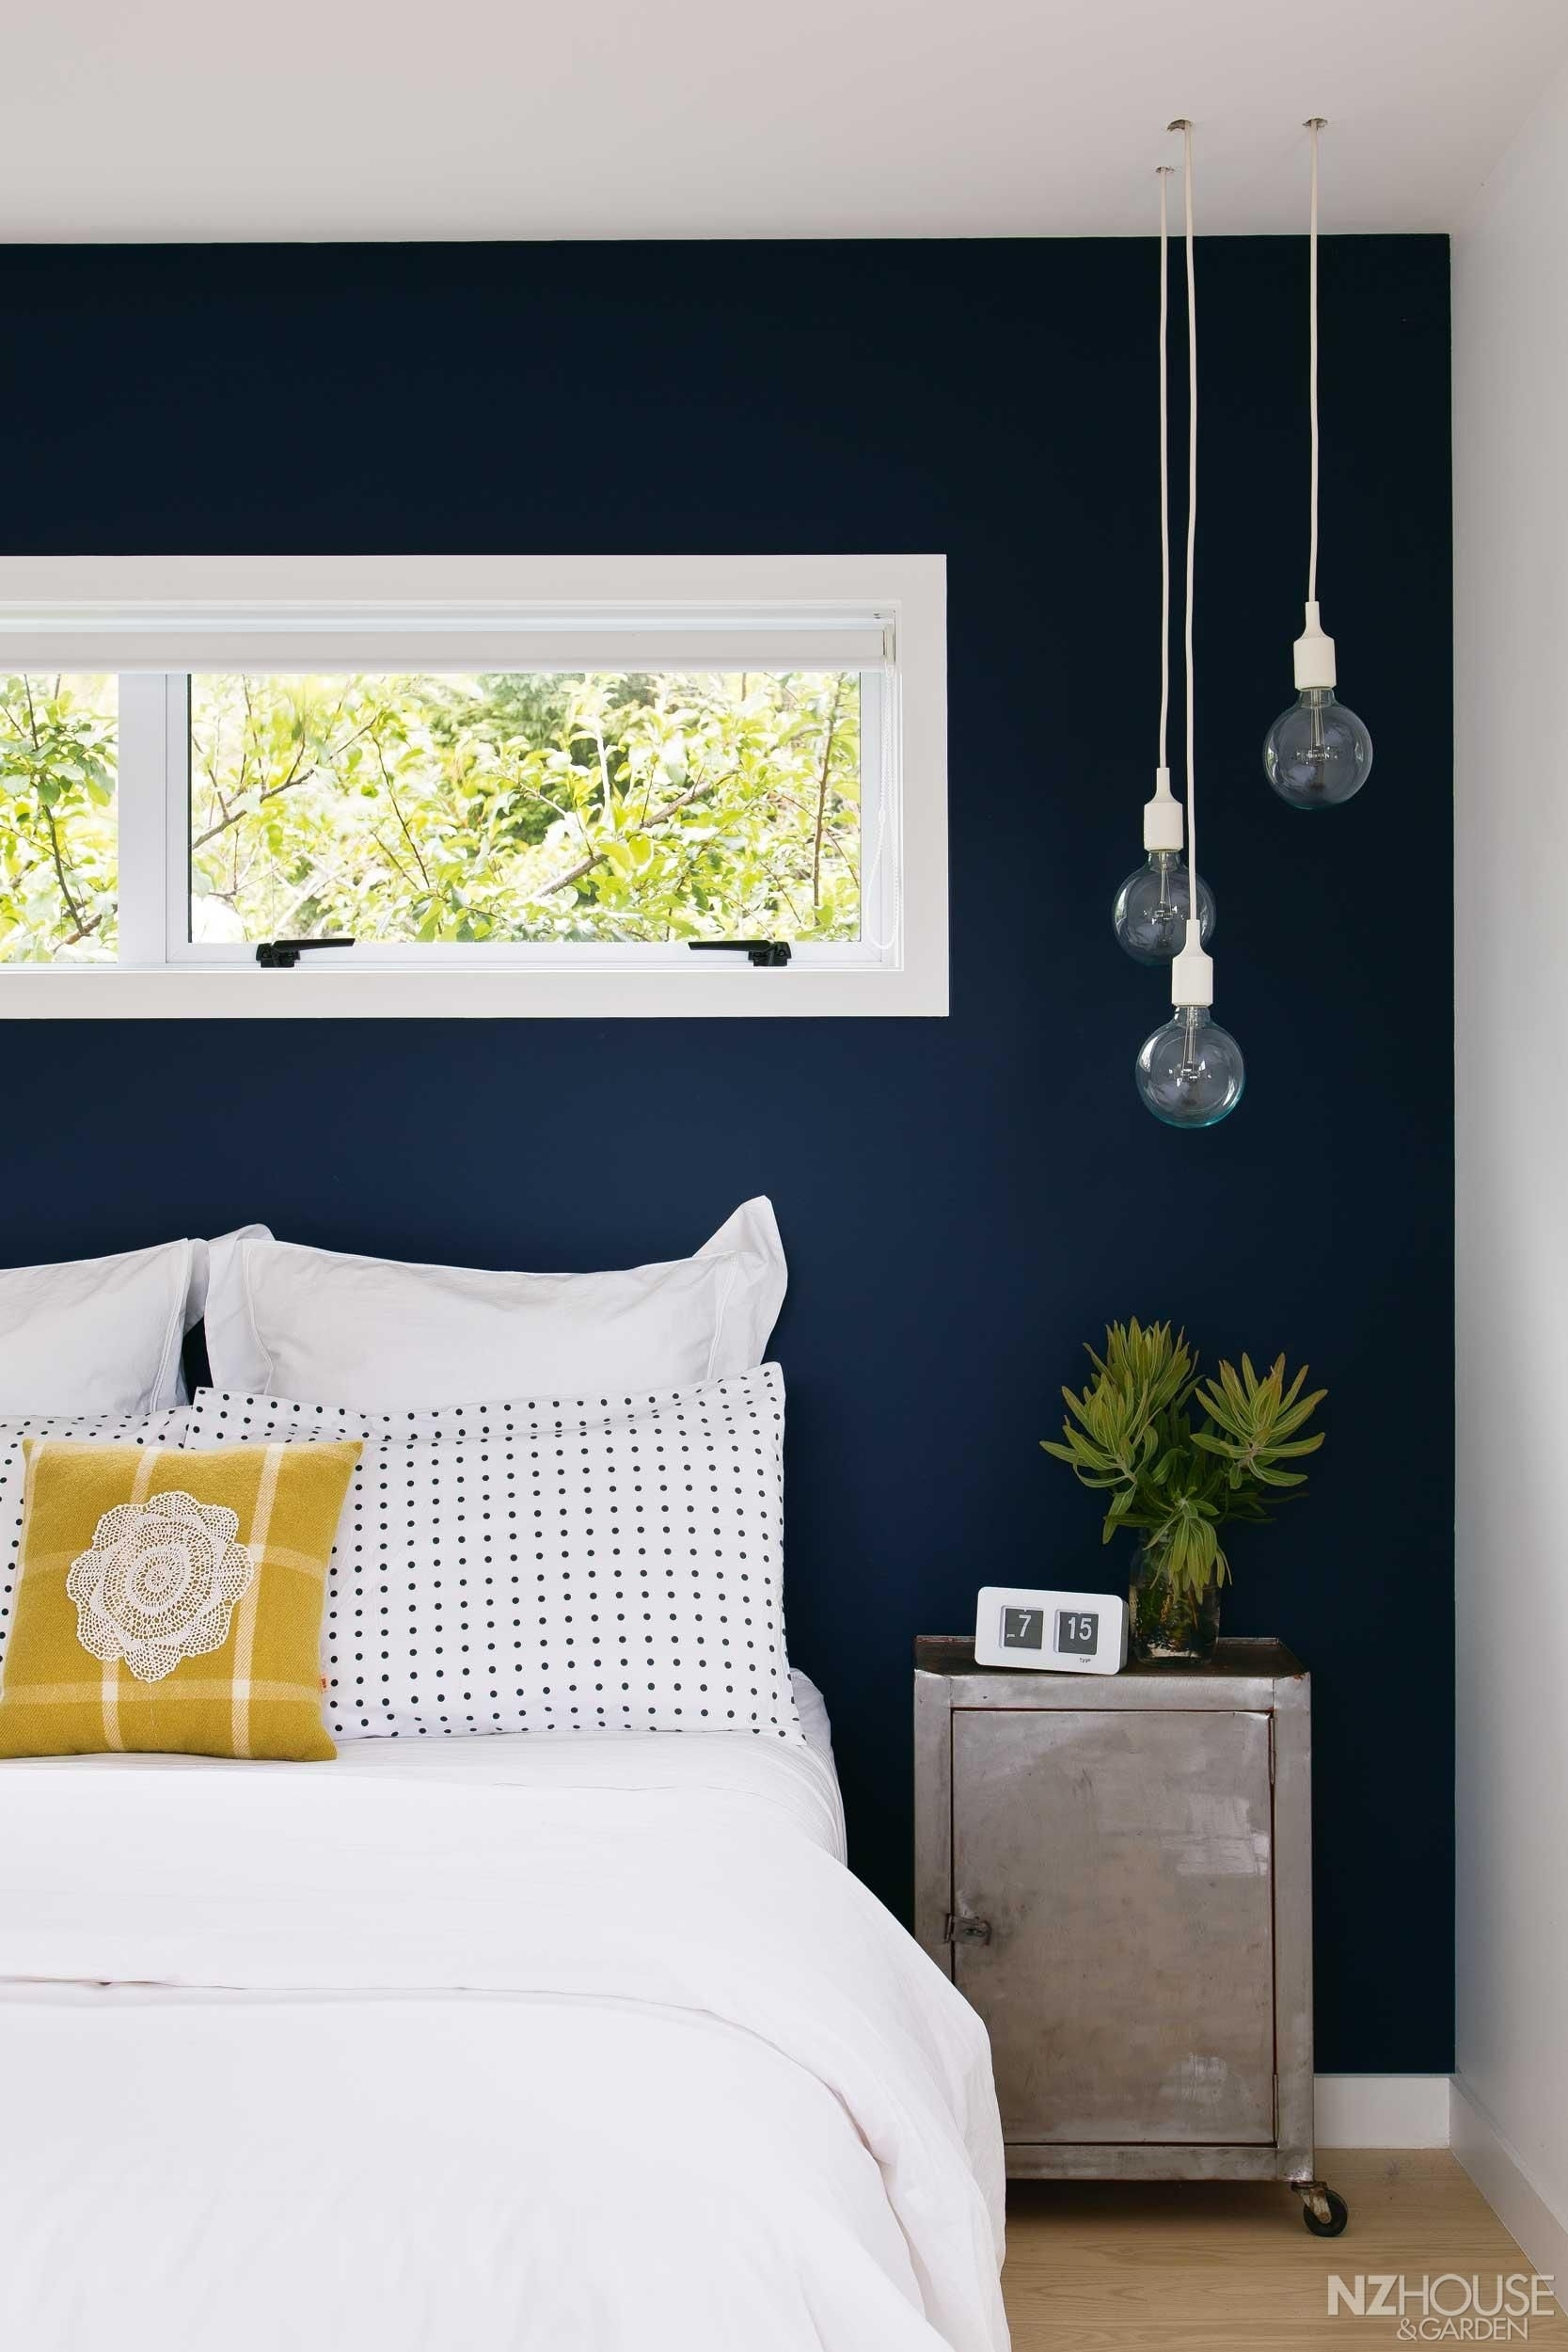 20+ Accent Wall Ideas You'll Surely Wish To Try This At Home Throughout Most Recently Released Wall Accents For Yellow Room (View 3 of 15)